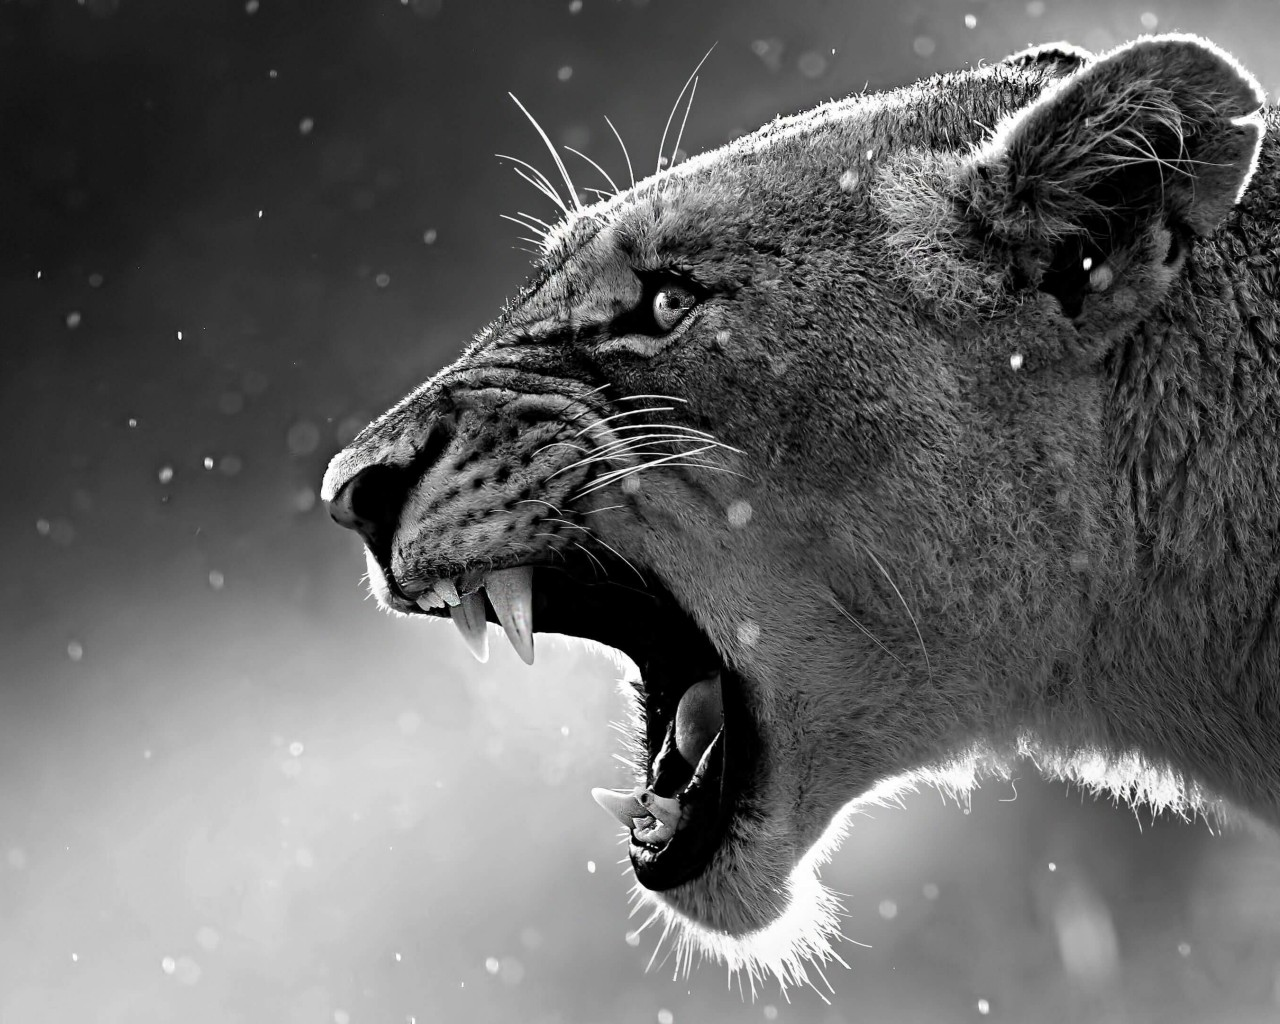 Lioness in Black & White Wallpaper for Desktop 1280x1024